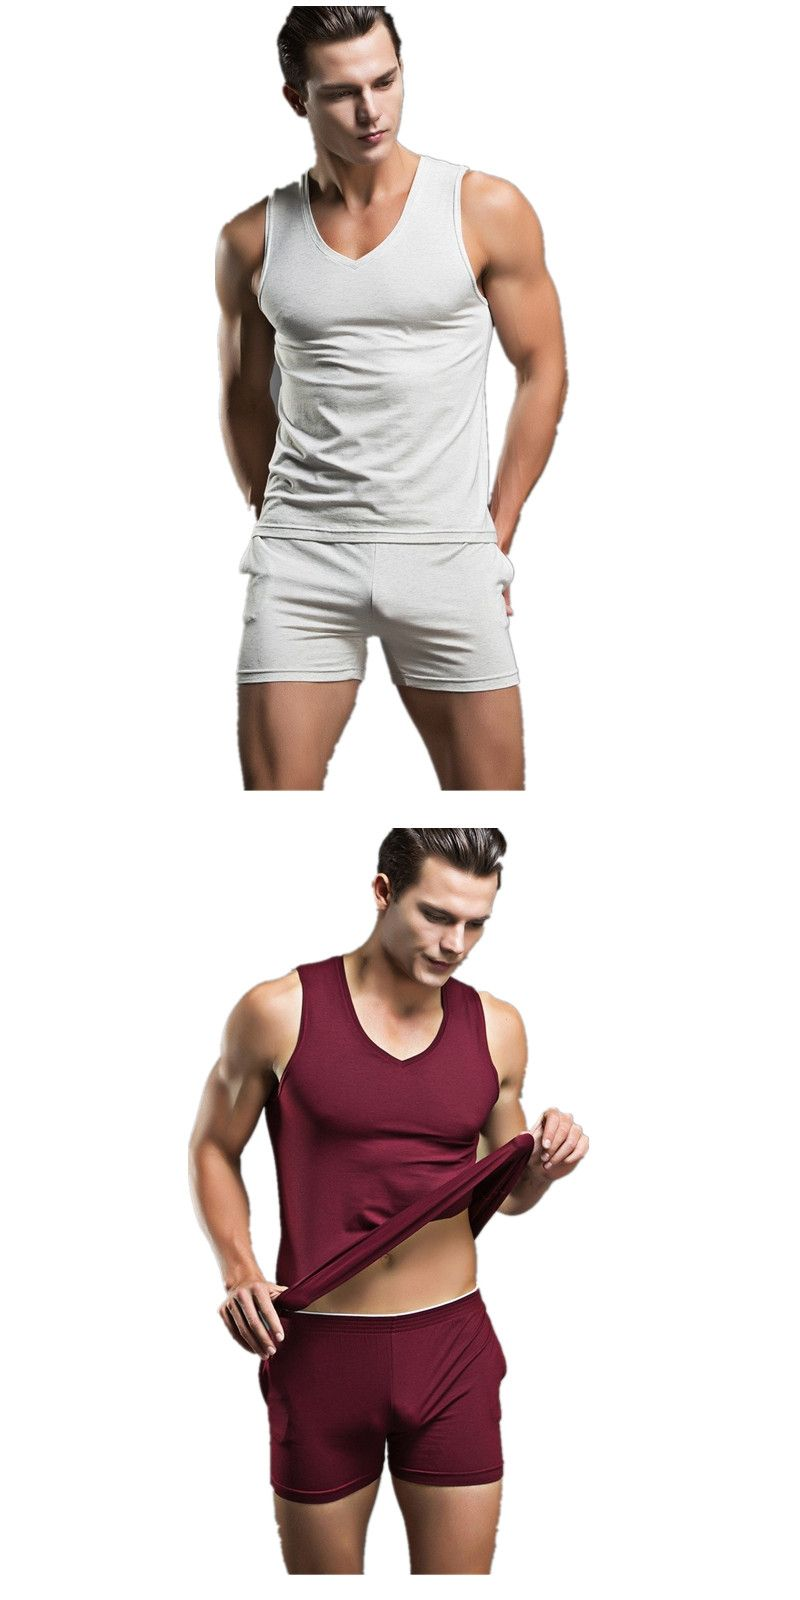 58a0c70b63 2016 Summer Mens Sexy Sleepwear Men s Cotton Nightwear Brand New Underwear  Tank Undershirts Casual Men Pajama